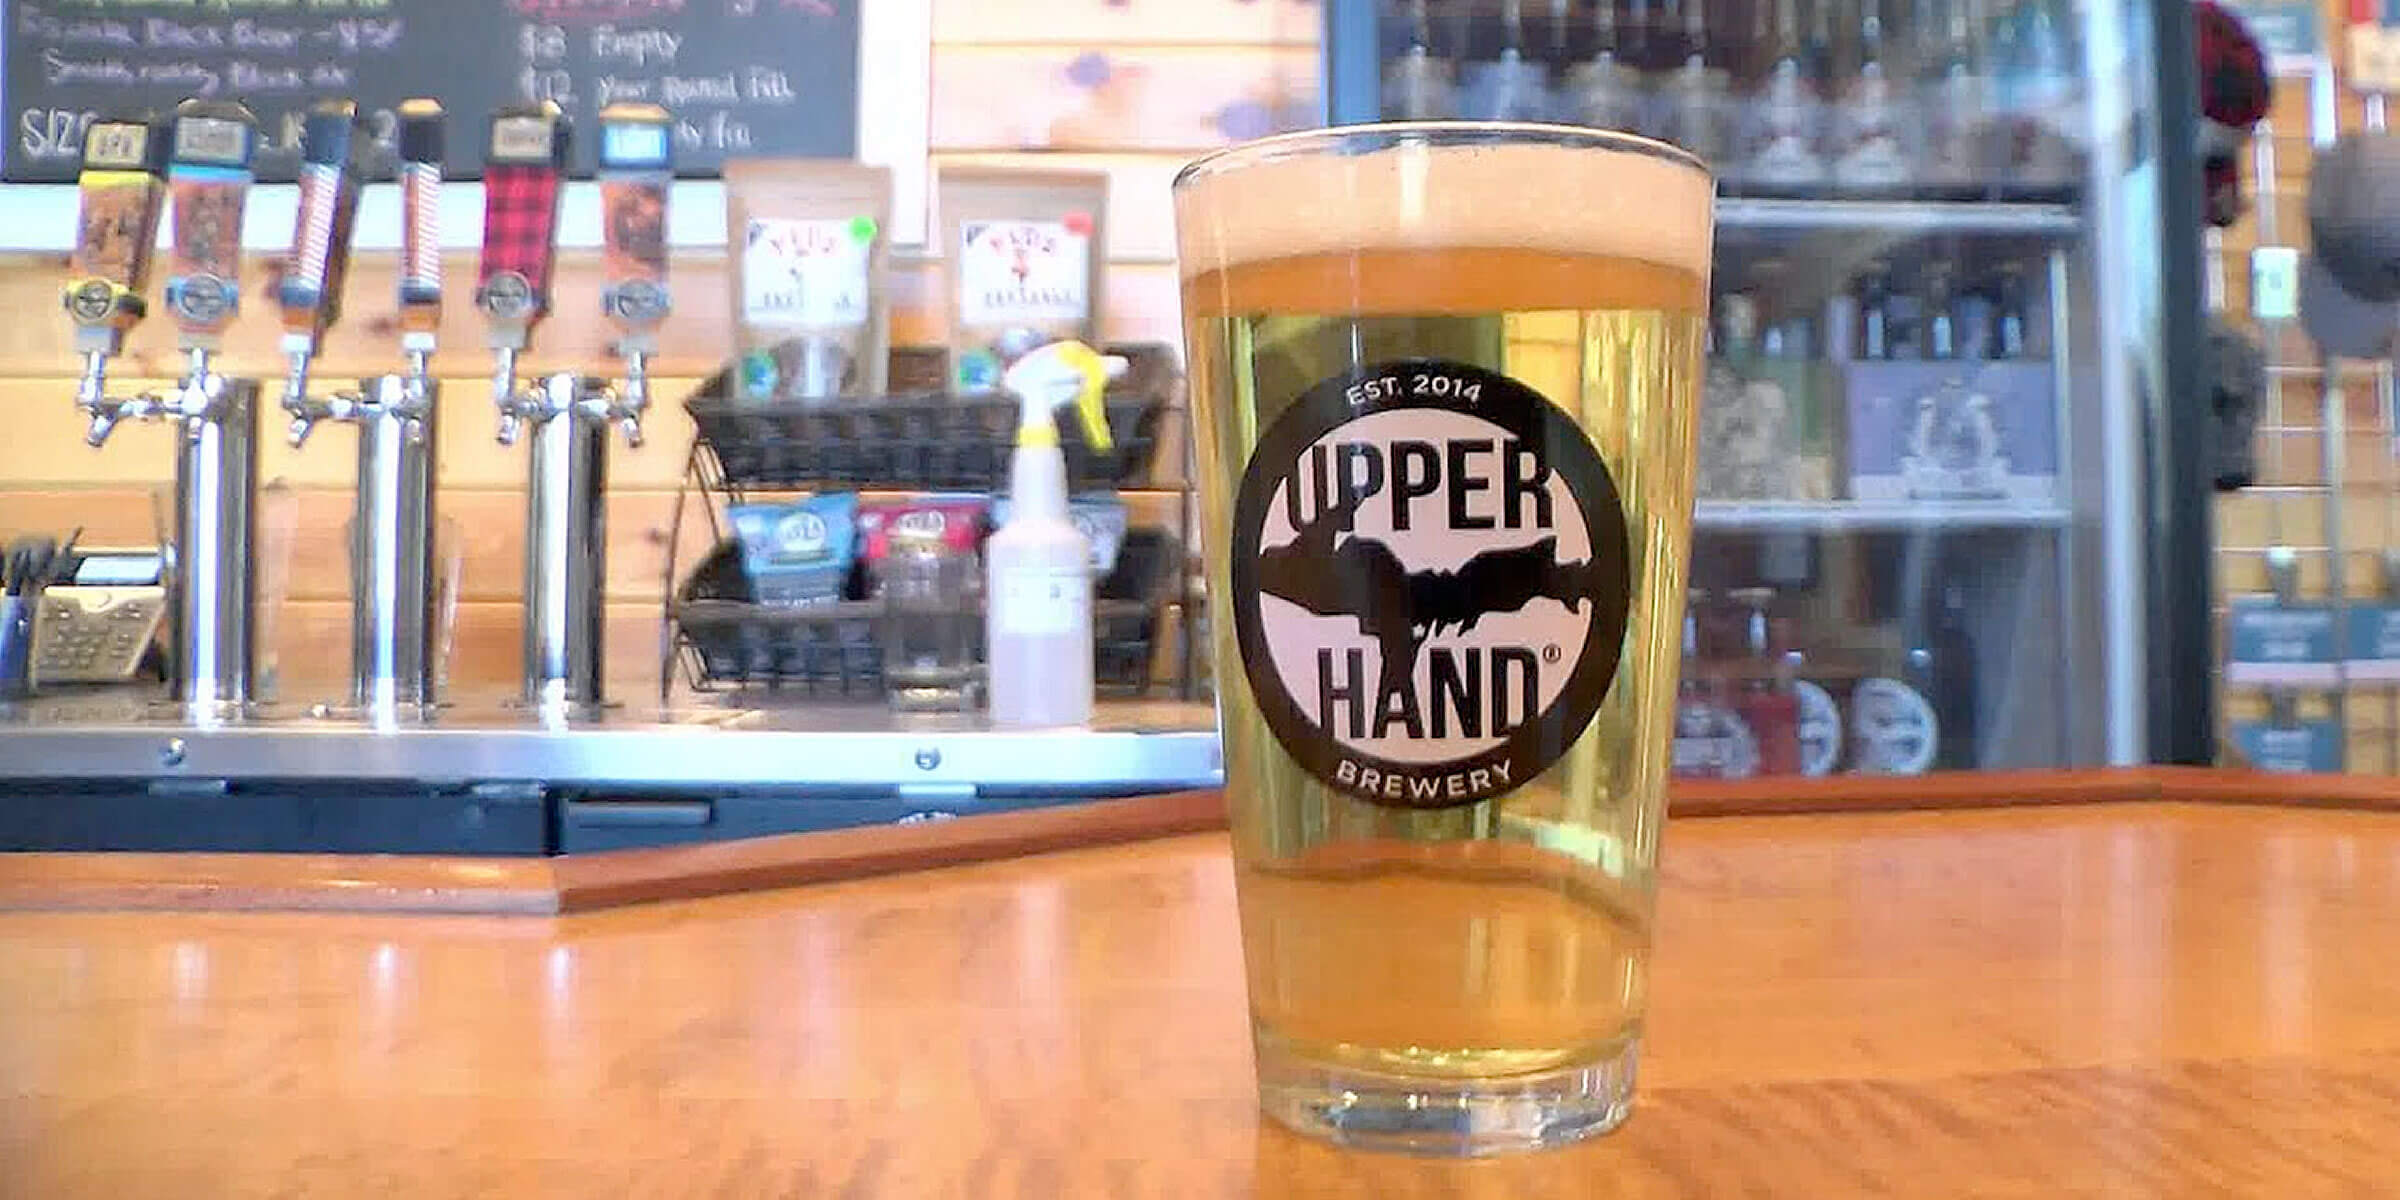 Beer in an Upper Hand Brewery branded shaker pint glass